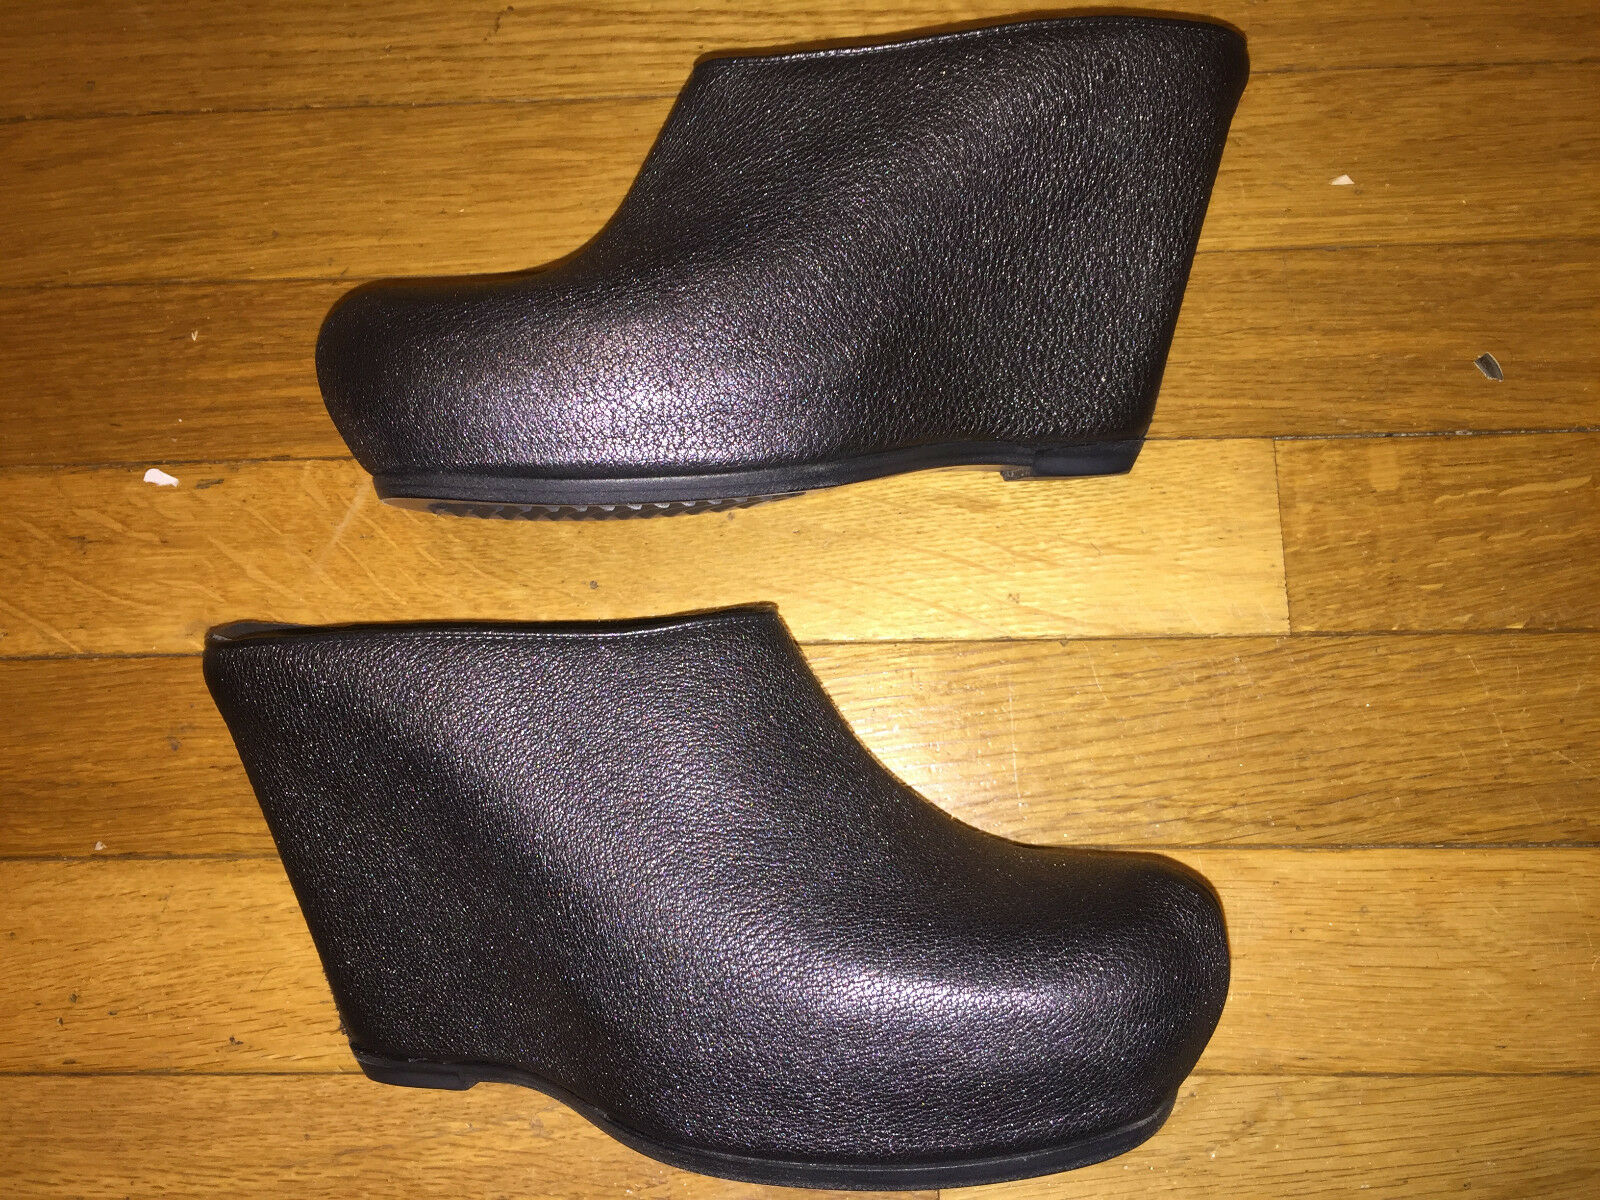 RICK OWENS SHOES CLOGS PEWTER LEATHER PLATFORM WEDGE MULE SHOES SIZE 39.5 (NEW)